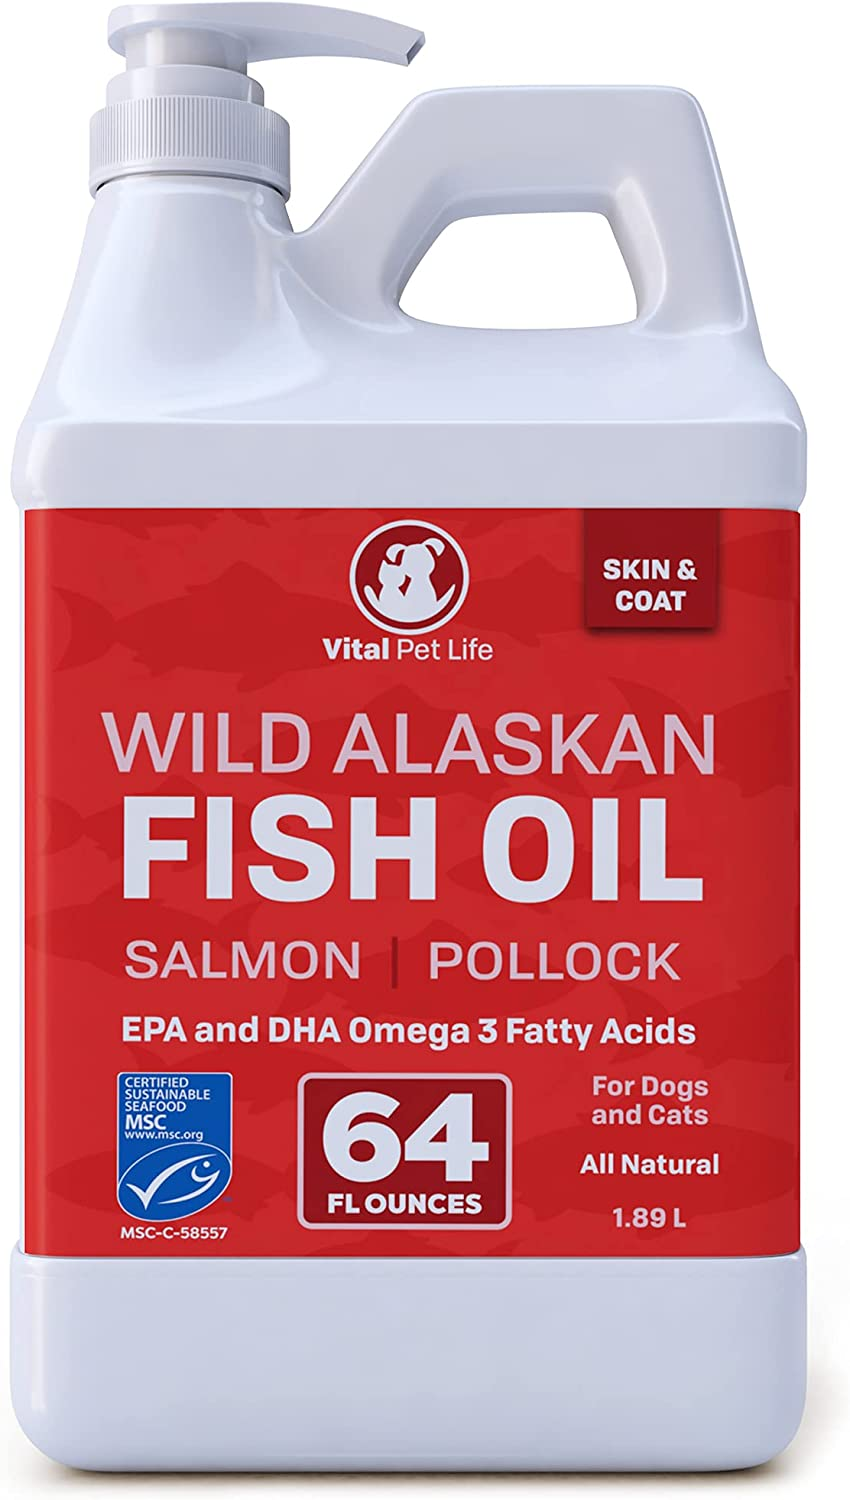 Fish Oil for Dogs, Wild Alaskan, Salmon, Pollock, Omega 3 EPA DHA Liquid Food Supplement for Pets, All Natural, Supports Healthy Skin Coat & Joints, Natural Allergy & Inflammation Defense, 64 oz